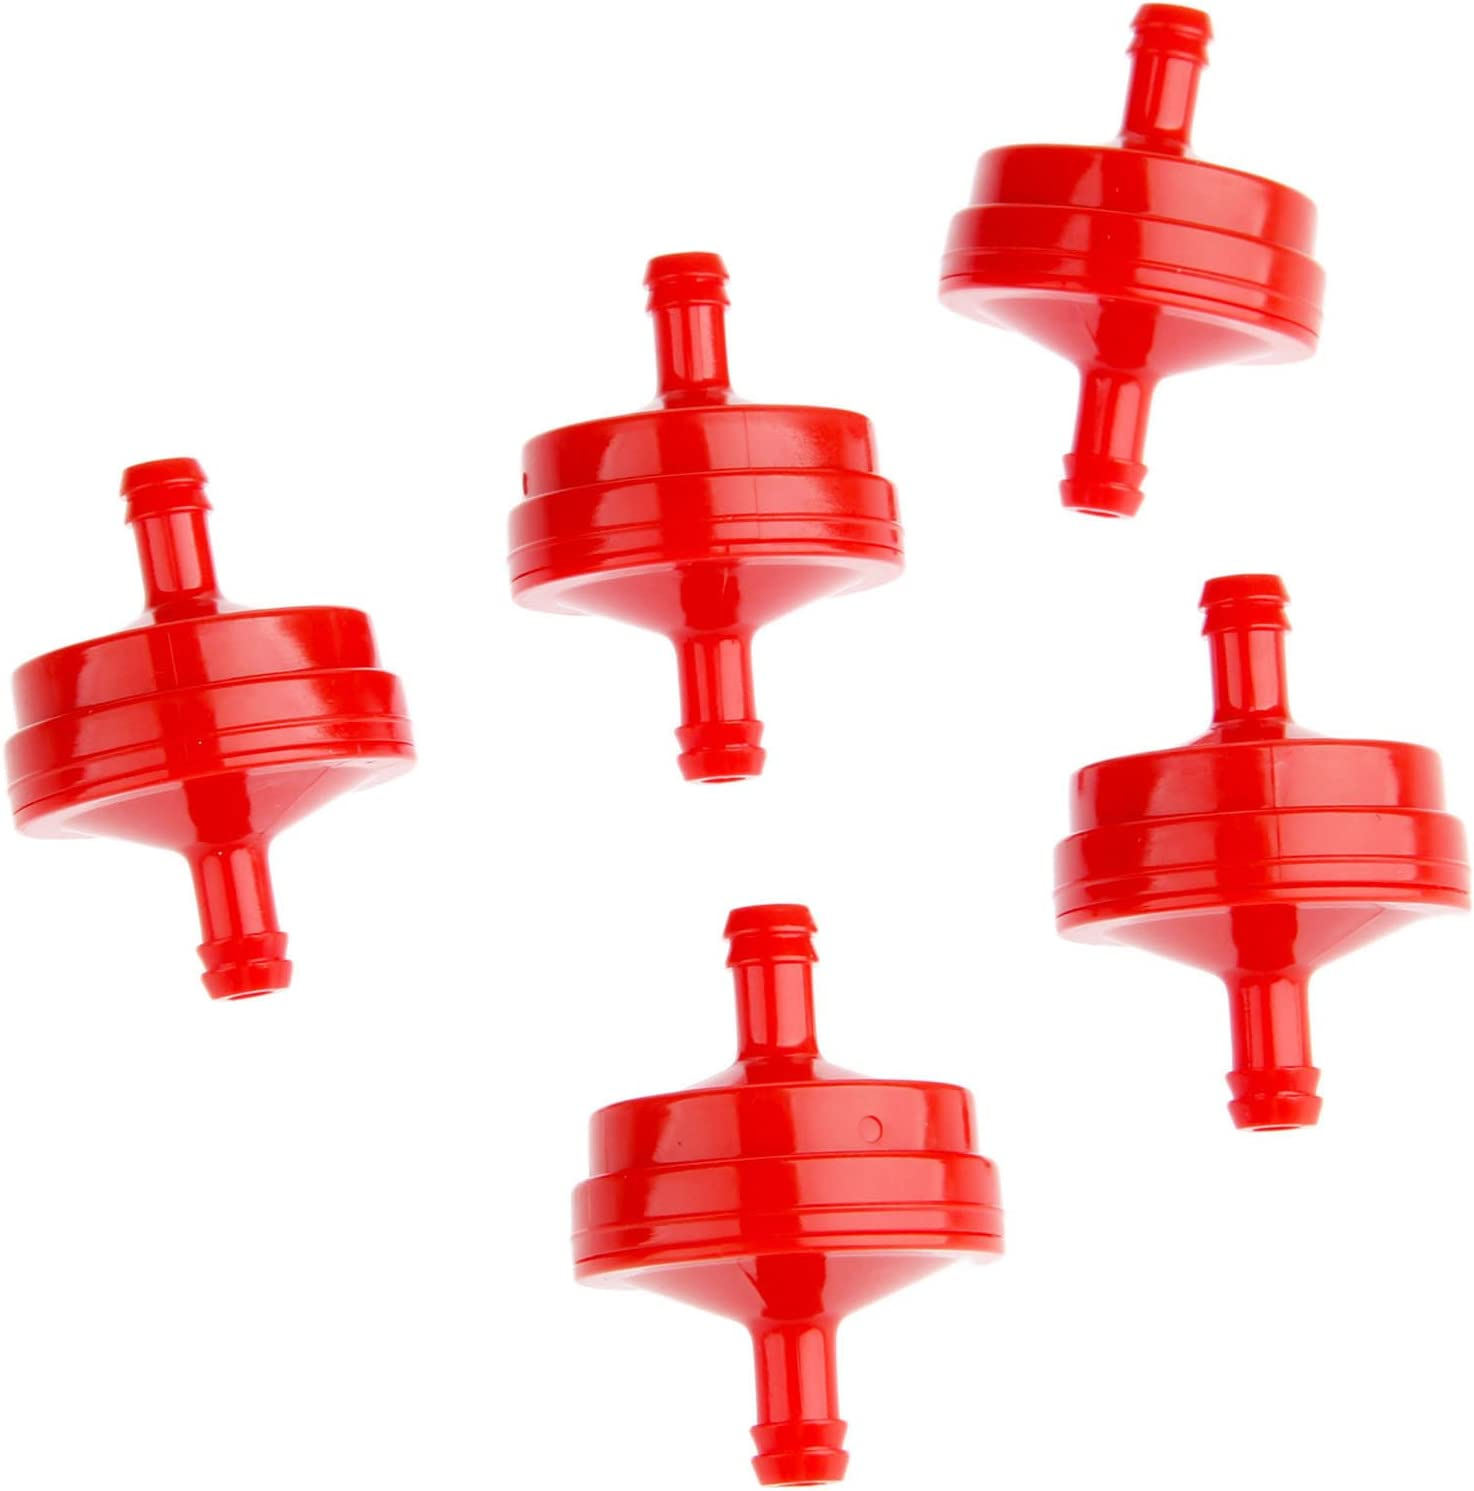 Mtsooning 2 Pcs Inline In Line Fuel Filter Lawn Mower Red for 298090 298090S Briggs and Stratton